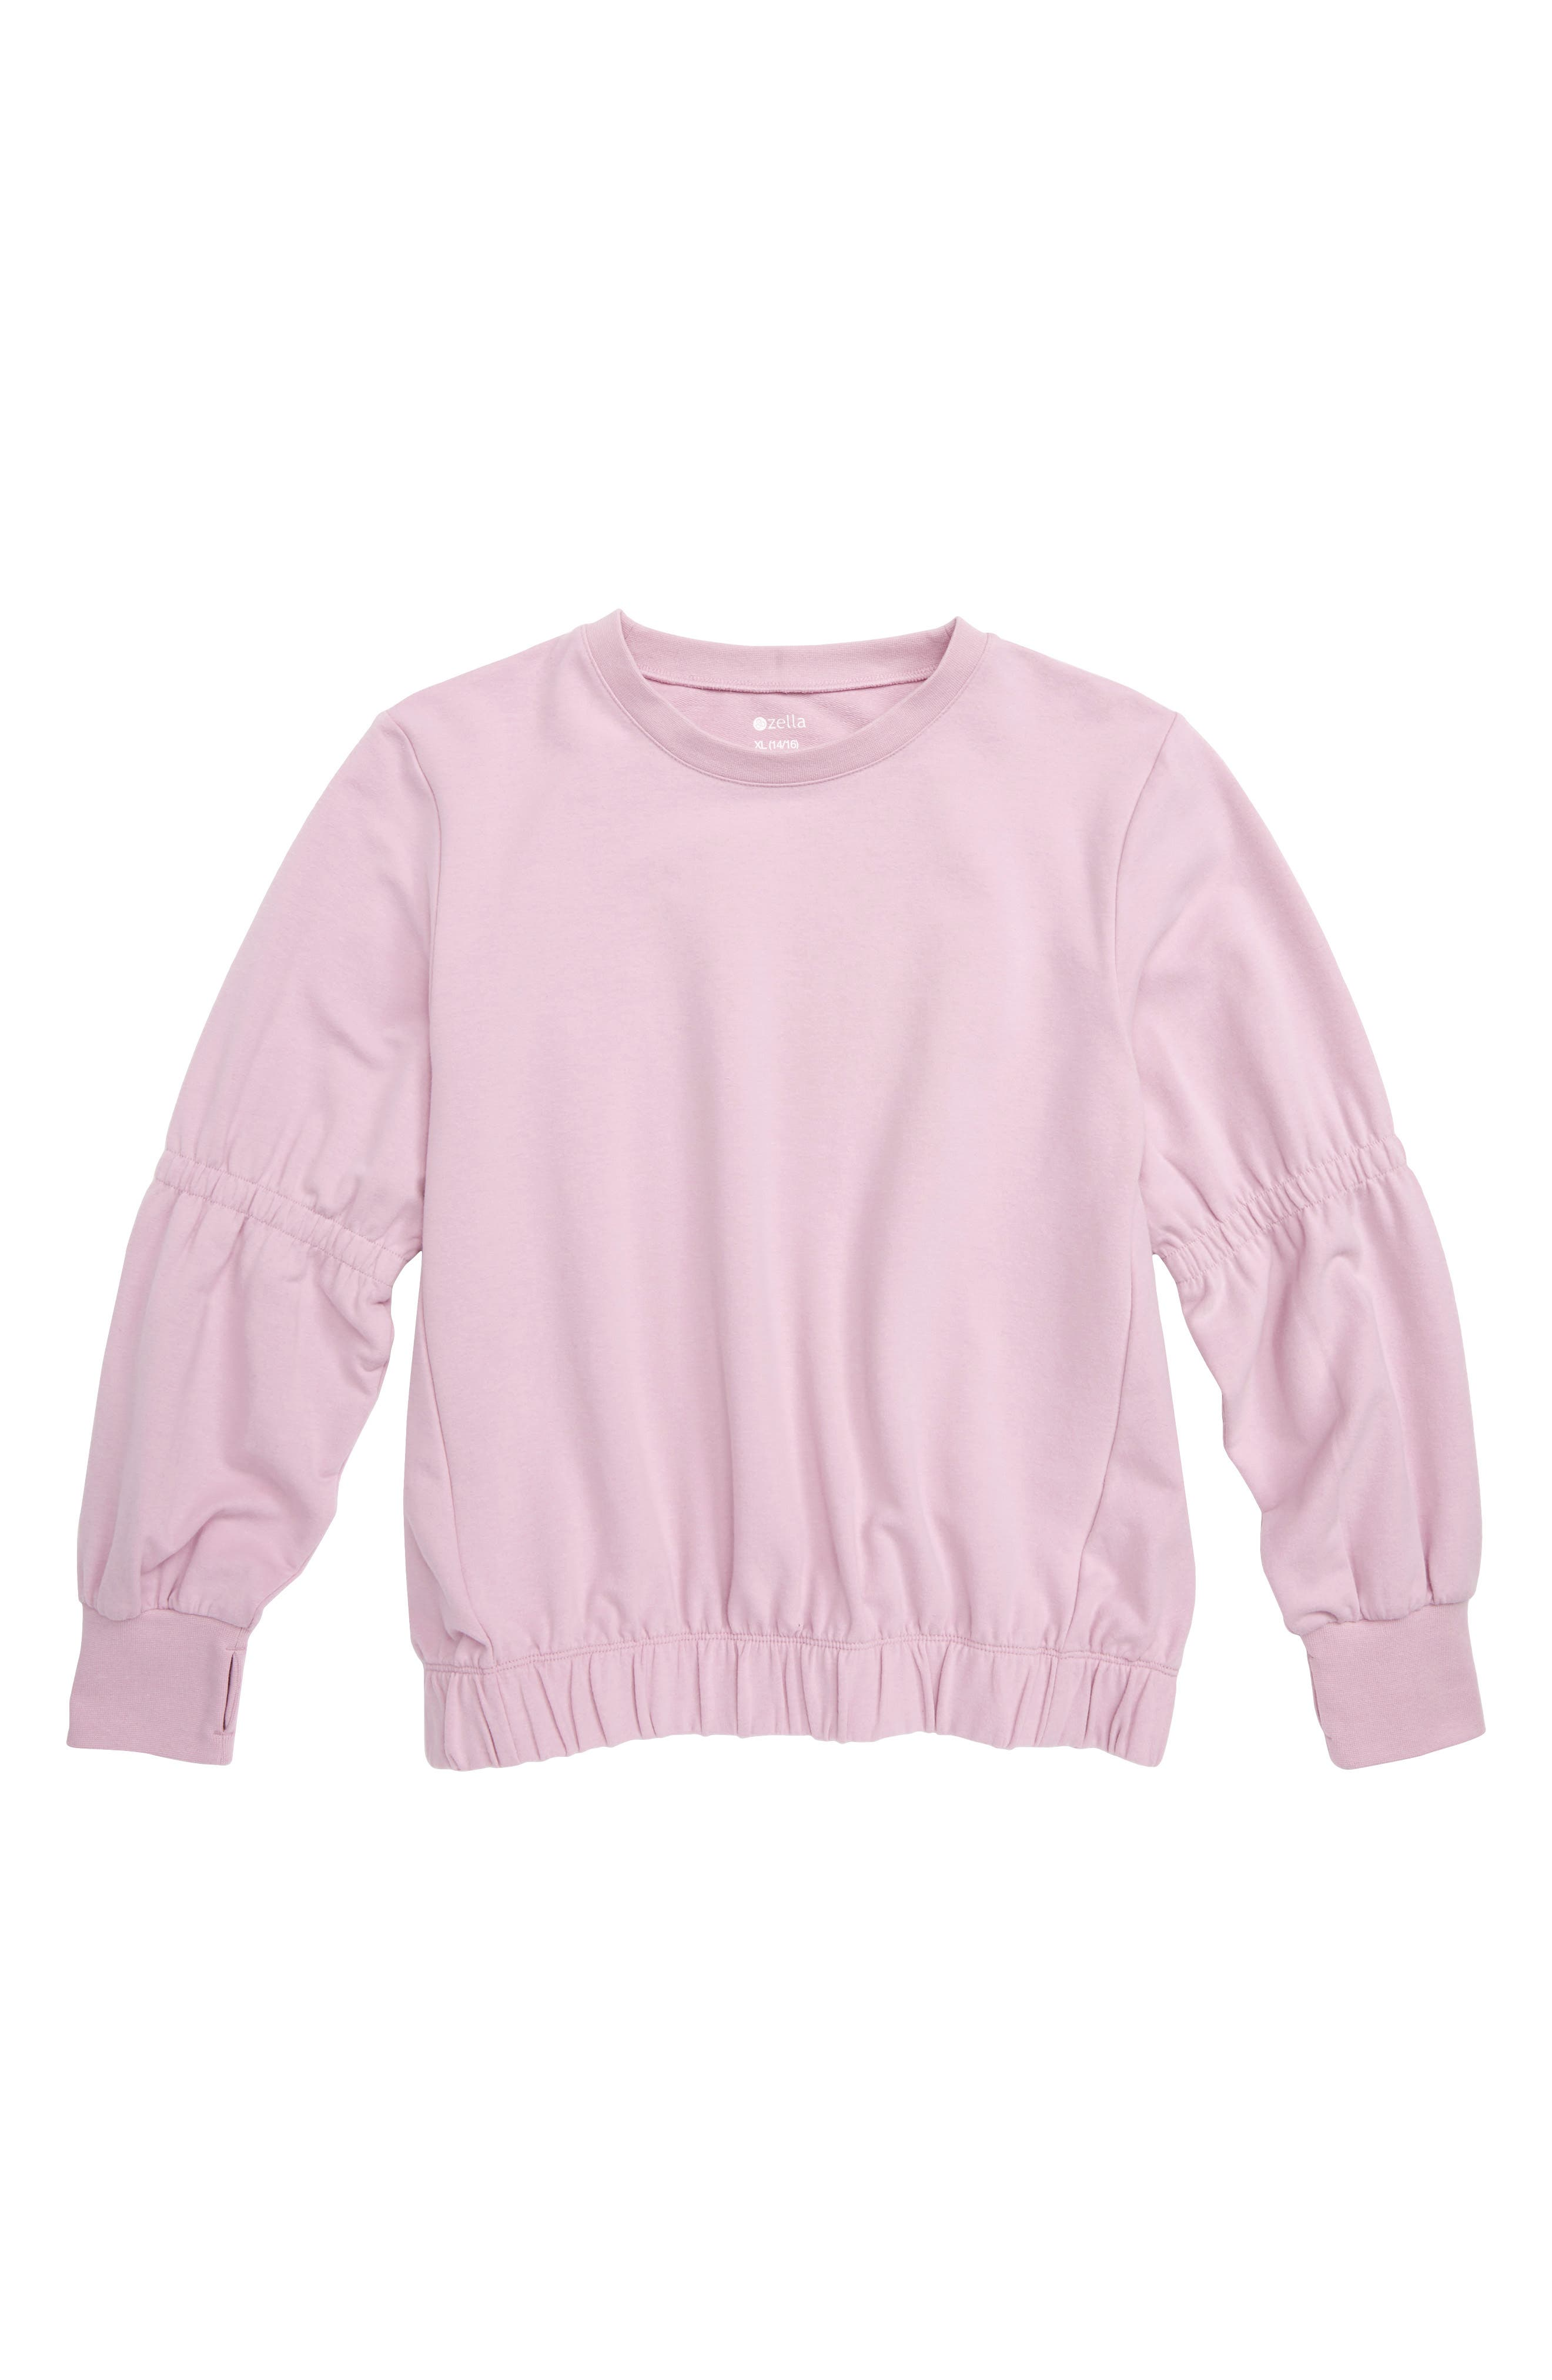 ZELLA GIRL Gathered Sleeve Pullover, Main, color, 530